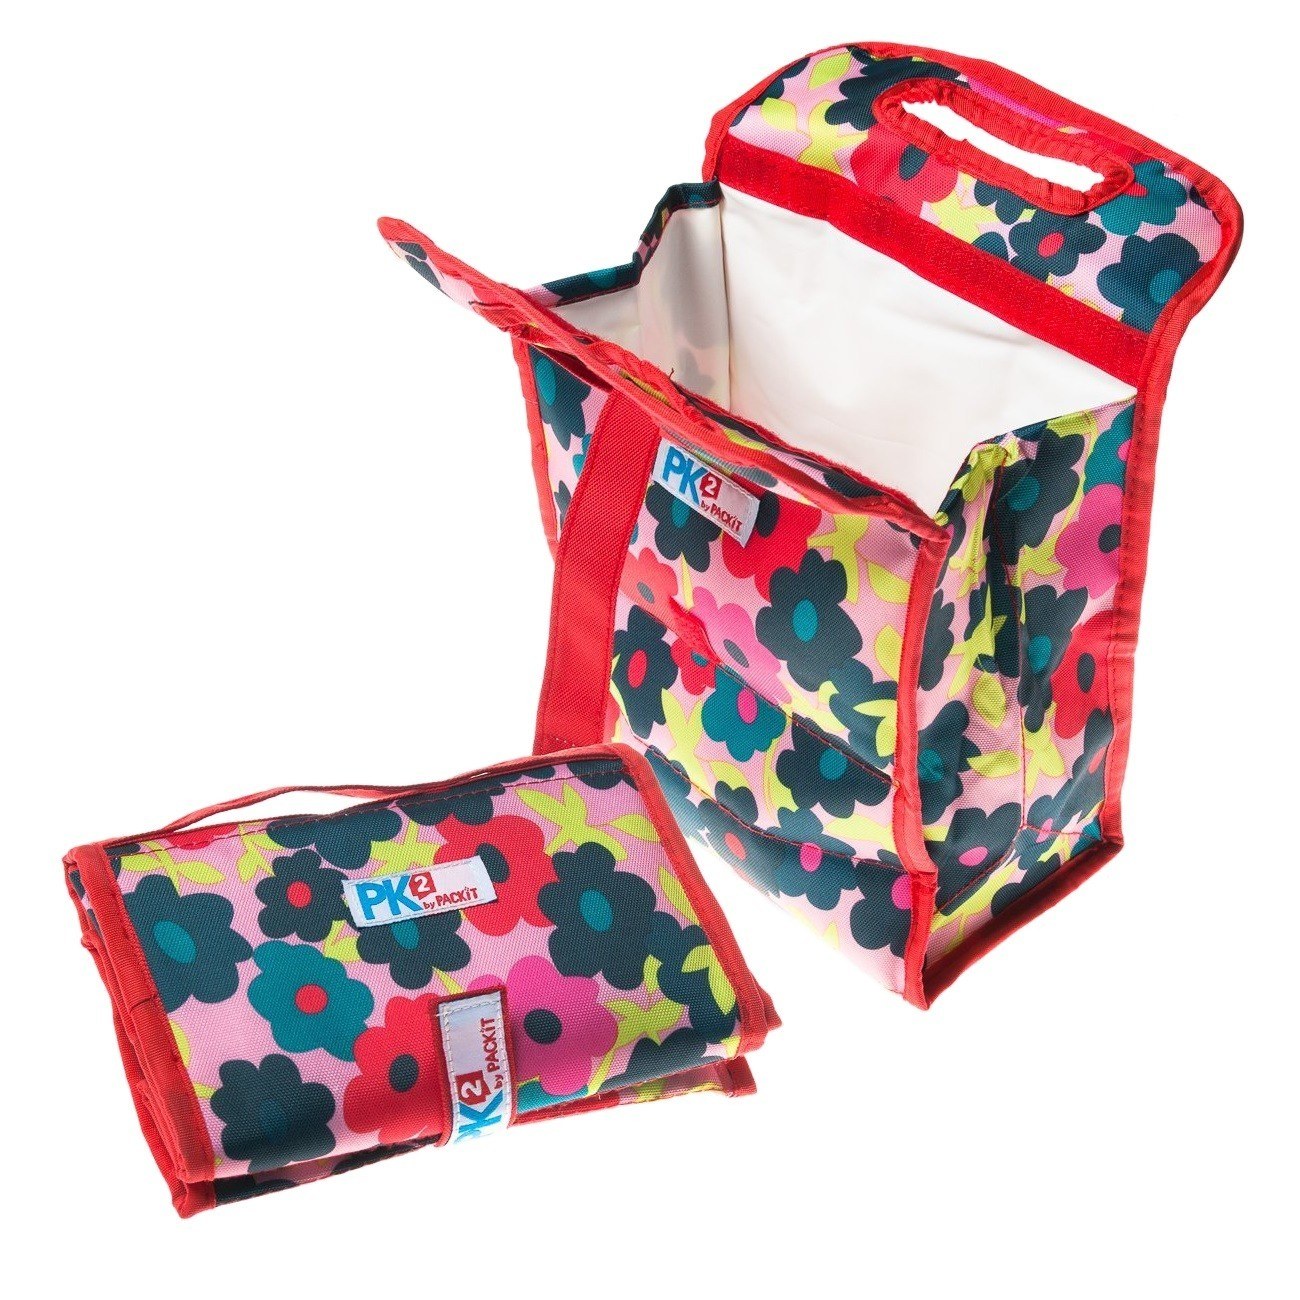 PackIt Freezable & Reusable Lunch Bag with Velcro Closure